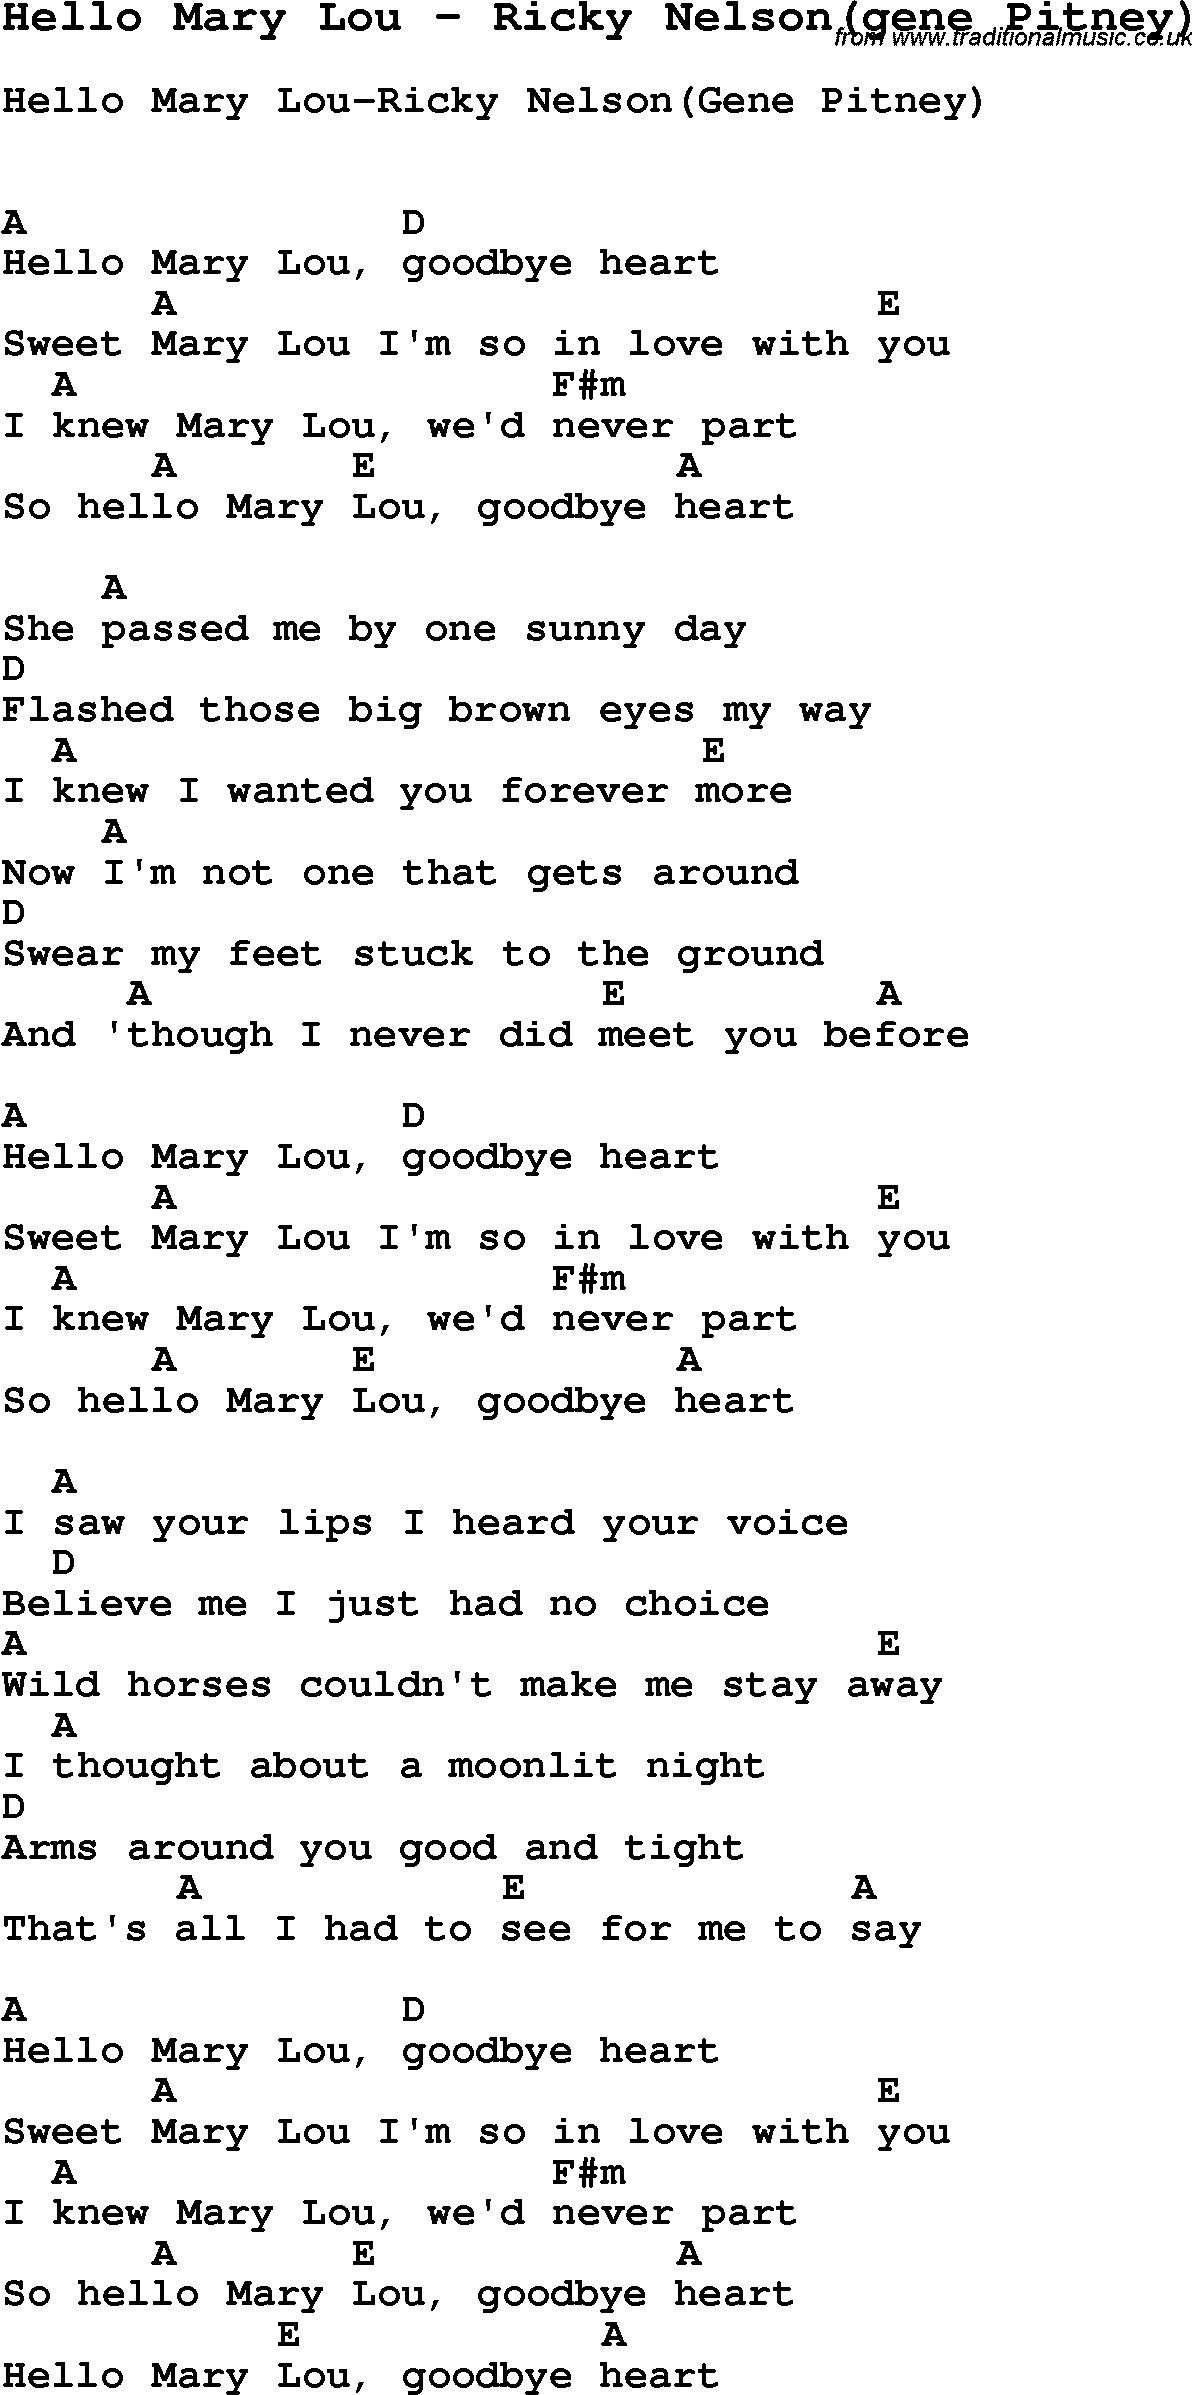 Song Hello Mary Lou By Ricky Nelsongene Pitney With Lyrics For